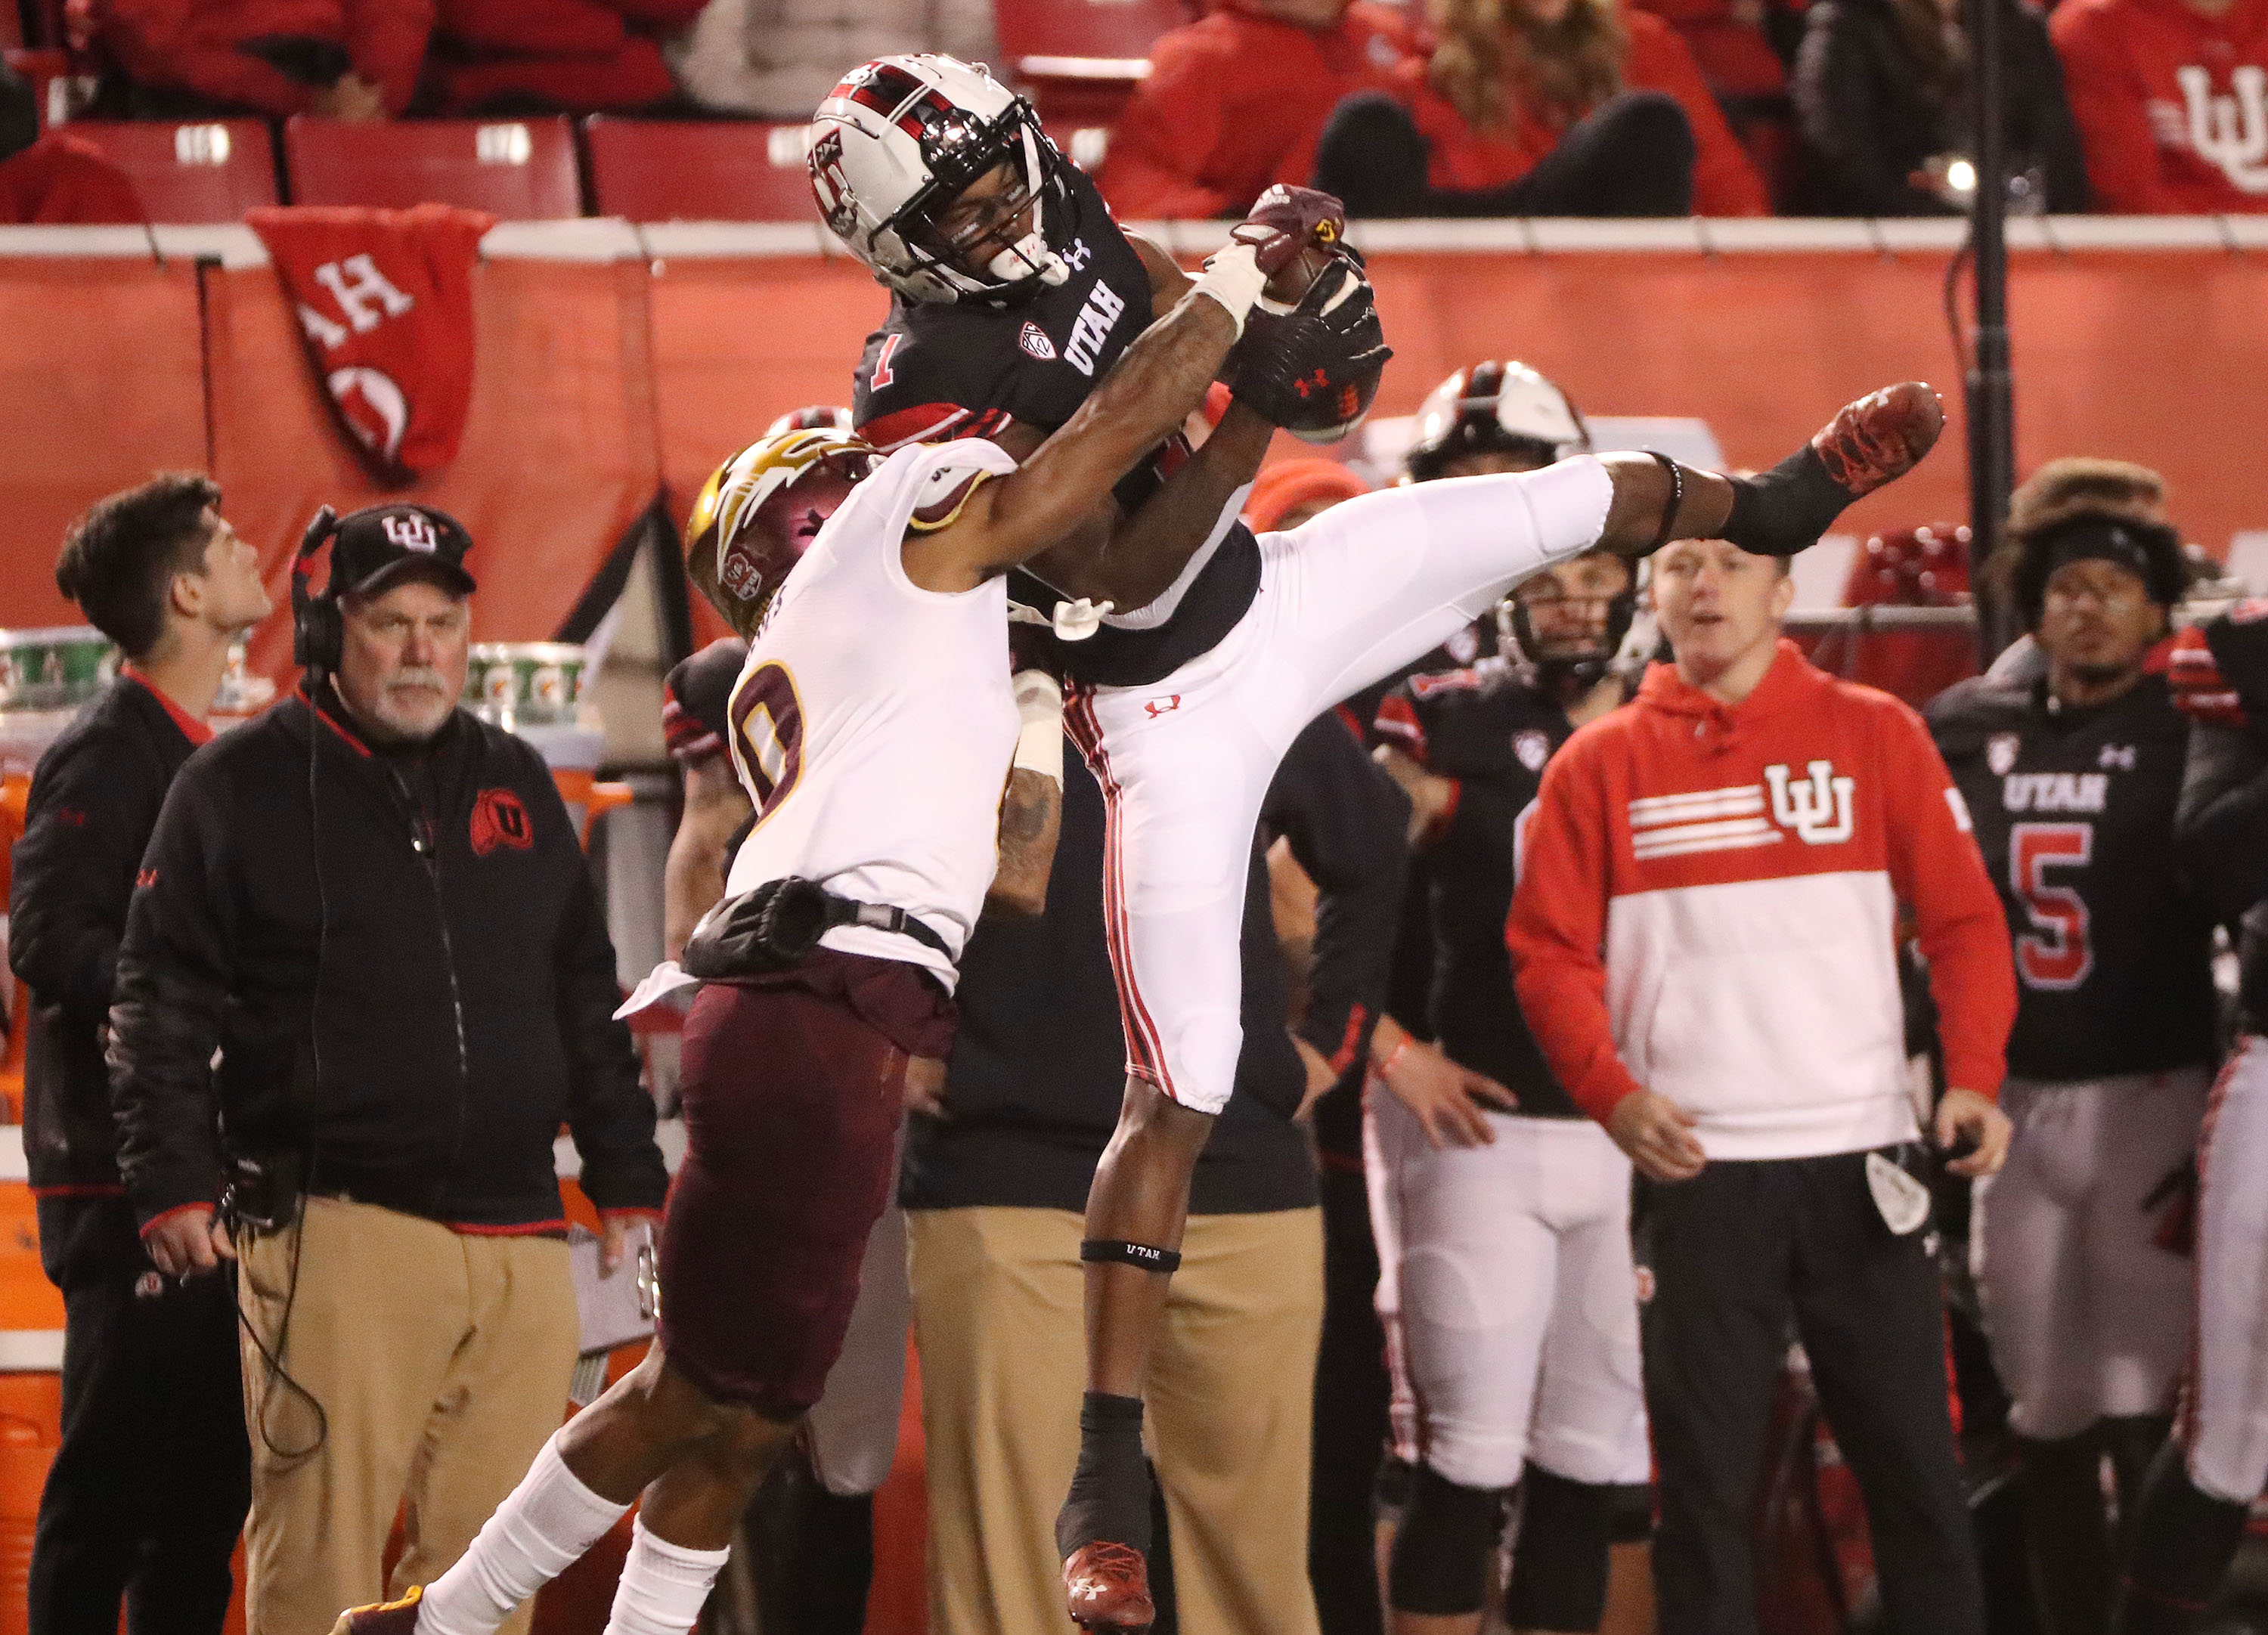 Utah Utes receiver Theo Howard (1) makes a catch during a game against Arizona State in Salt Lake City on Oct. 16, 2021.